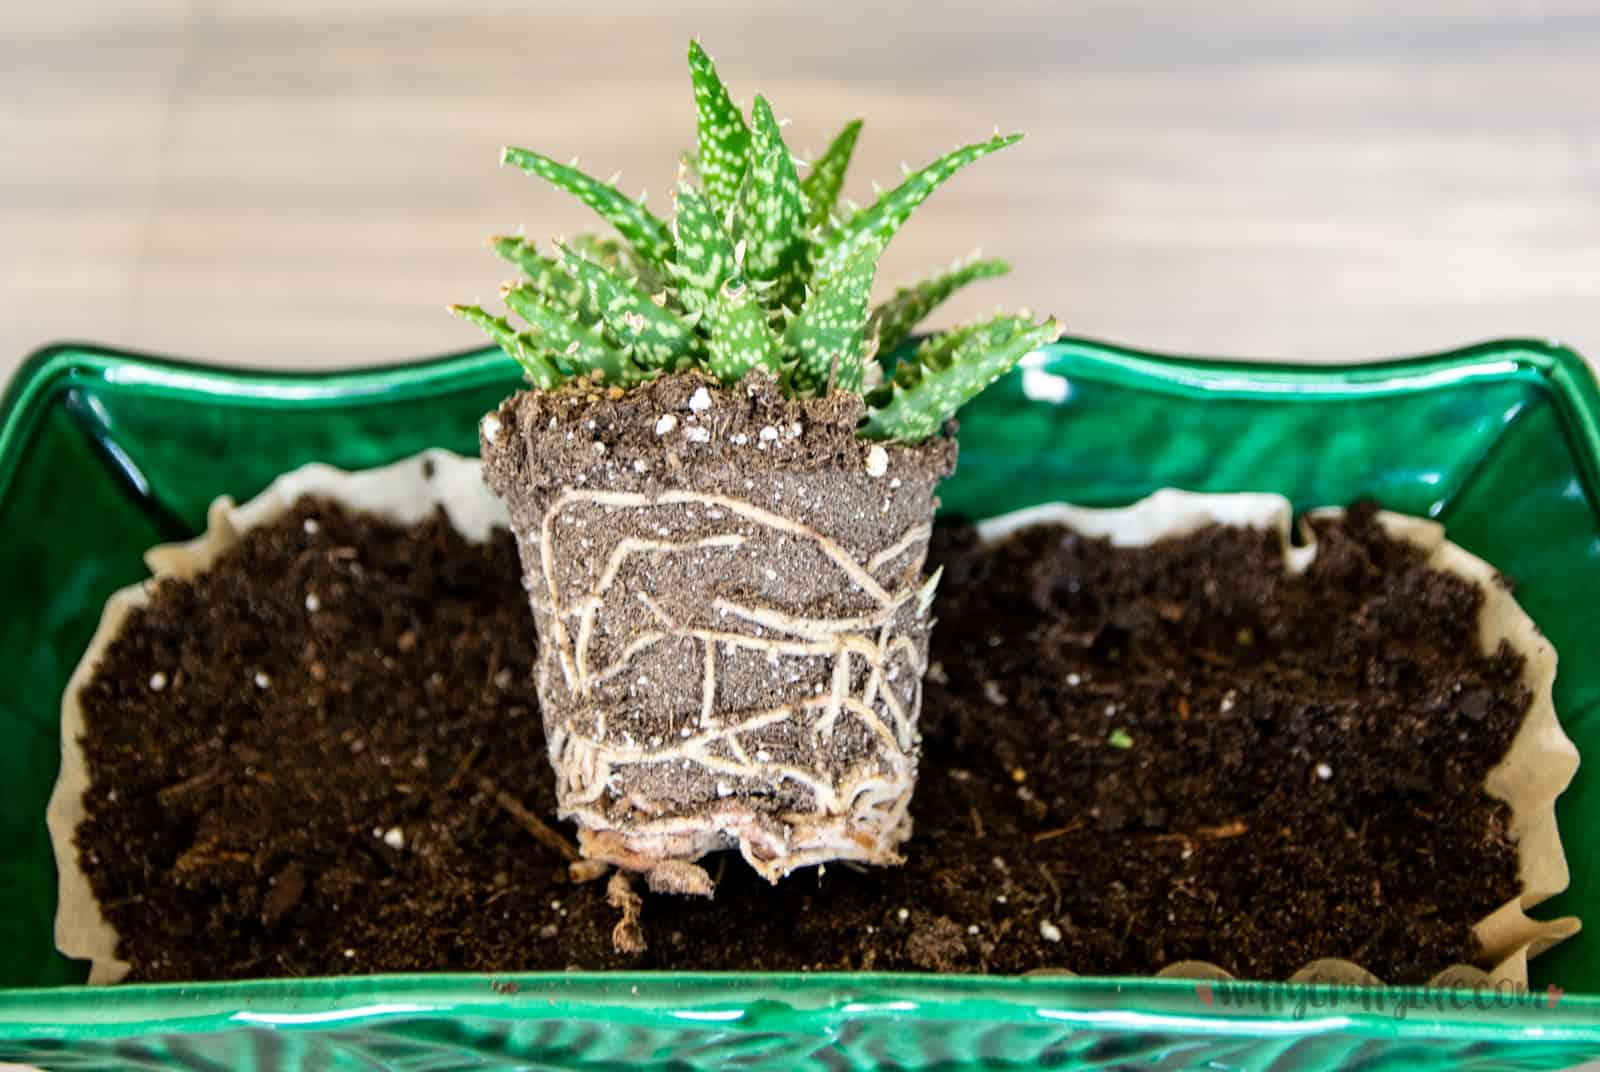 plant in planter, ready for planting